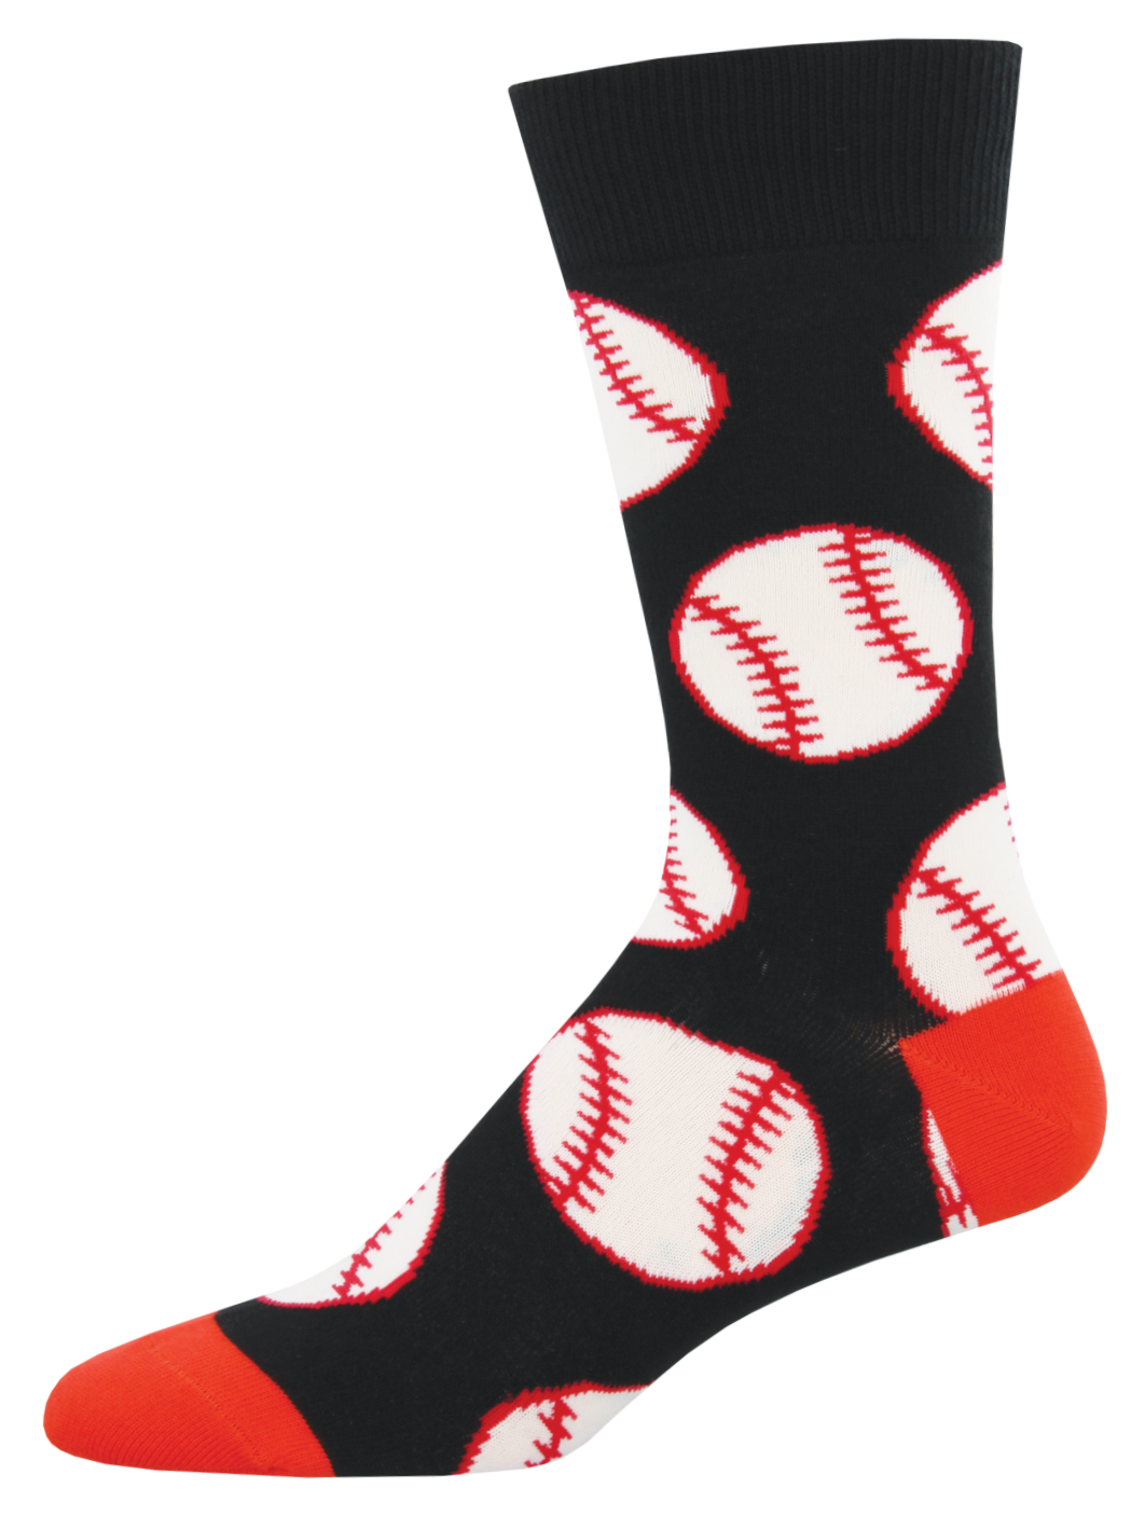 Baseball Decorative Men S Socks Museum Outlets Mens Crew Socks Mens Socks Baseball Socks